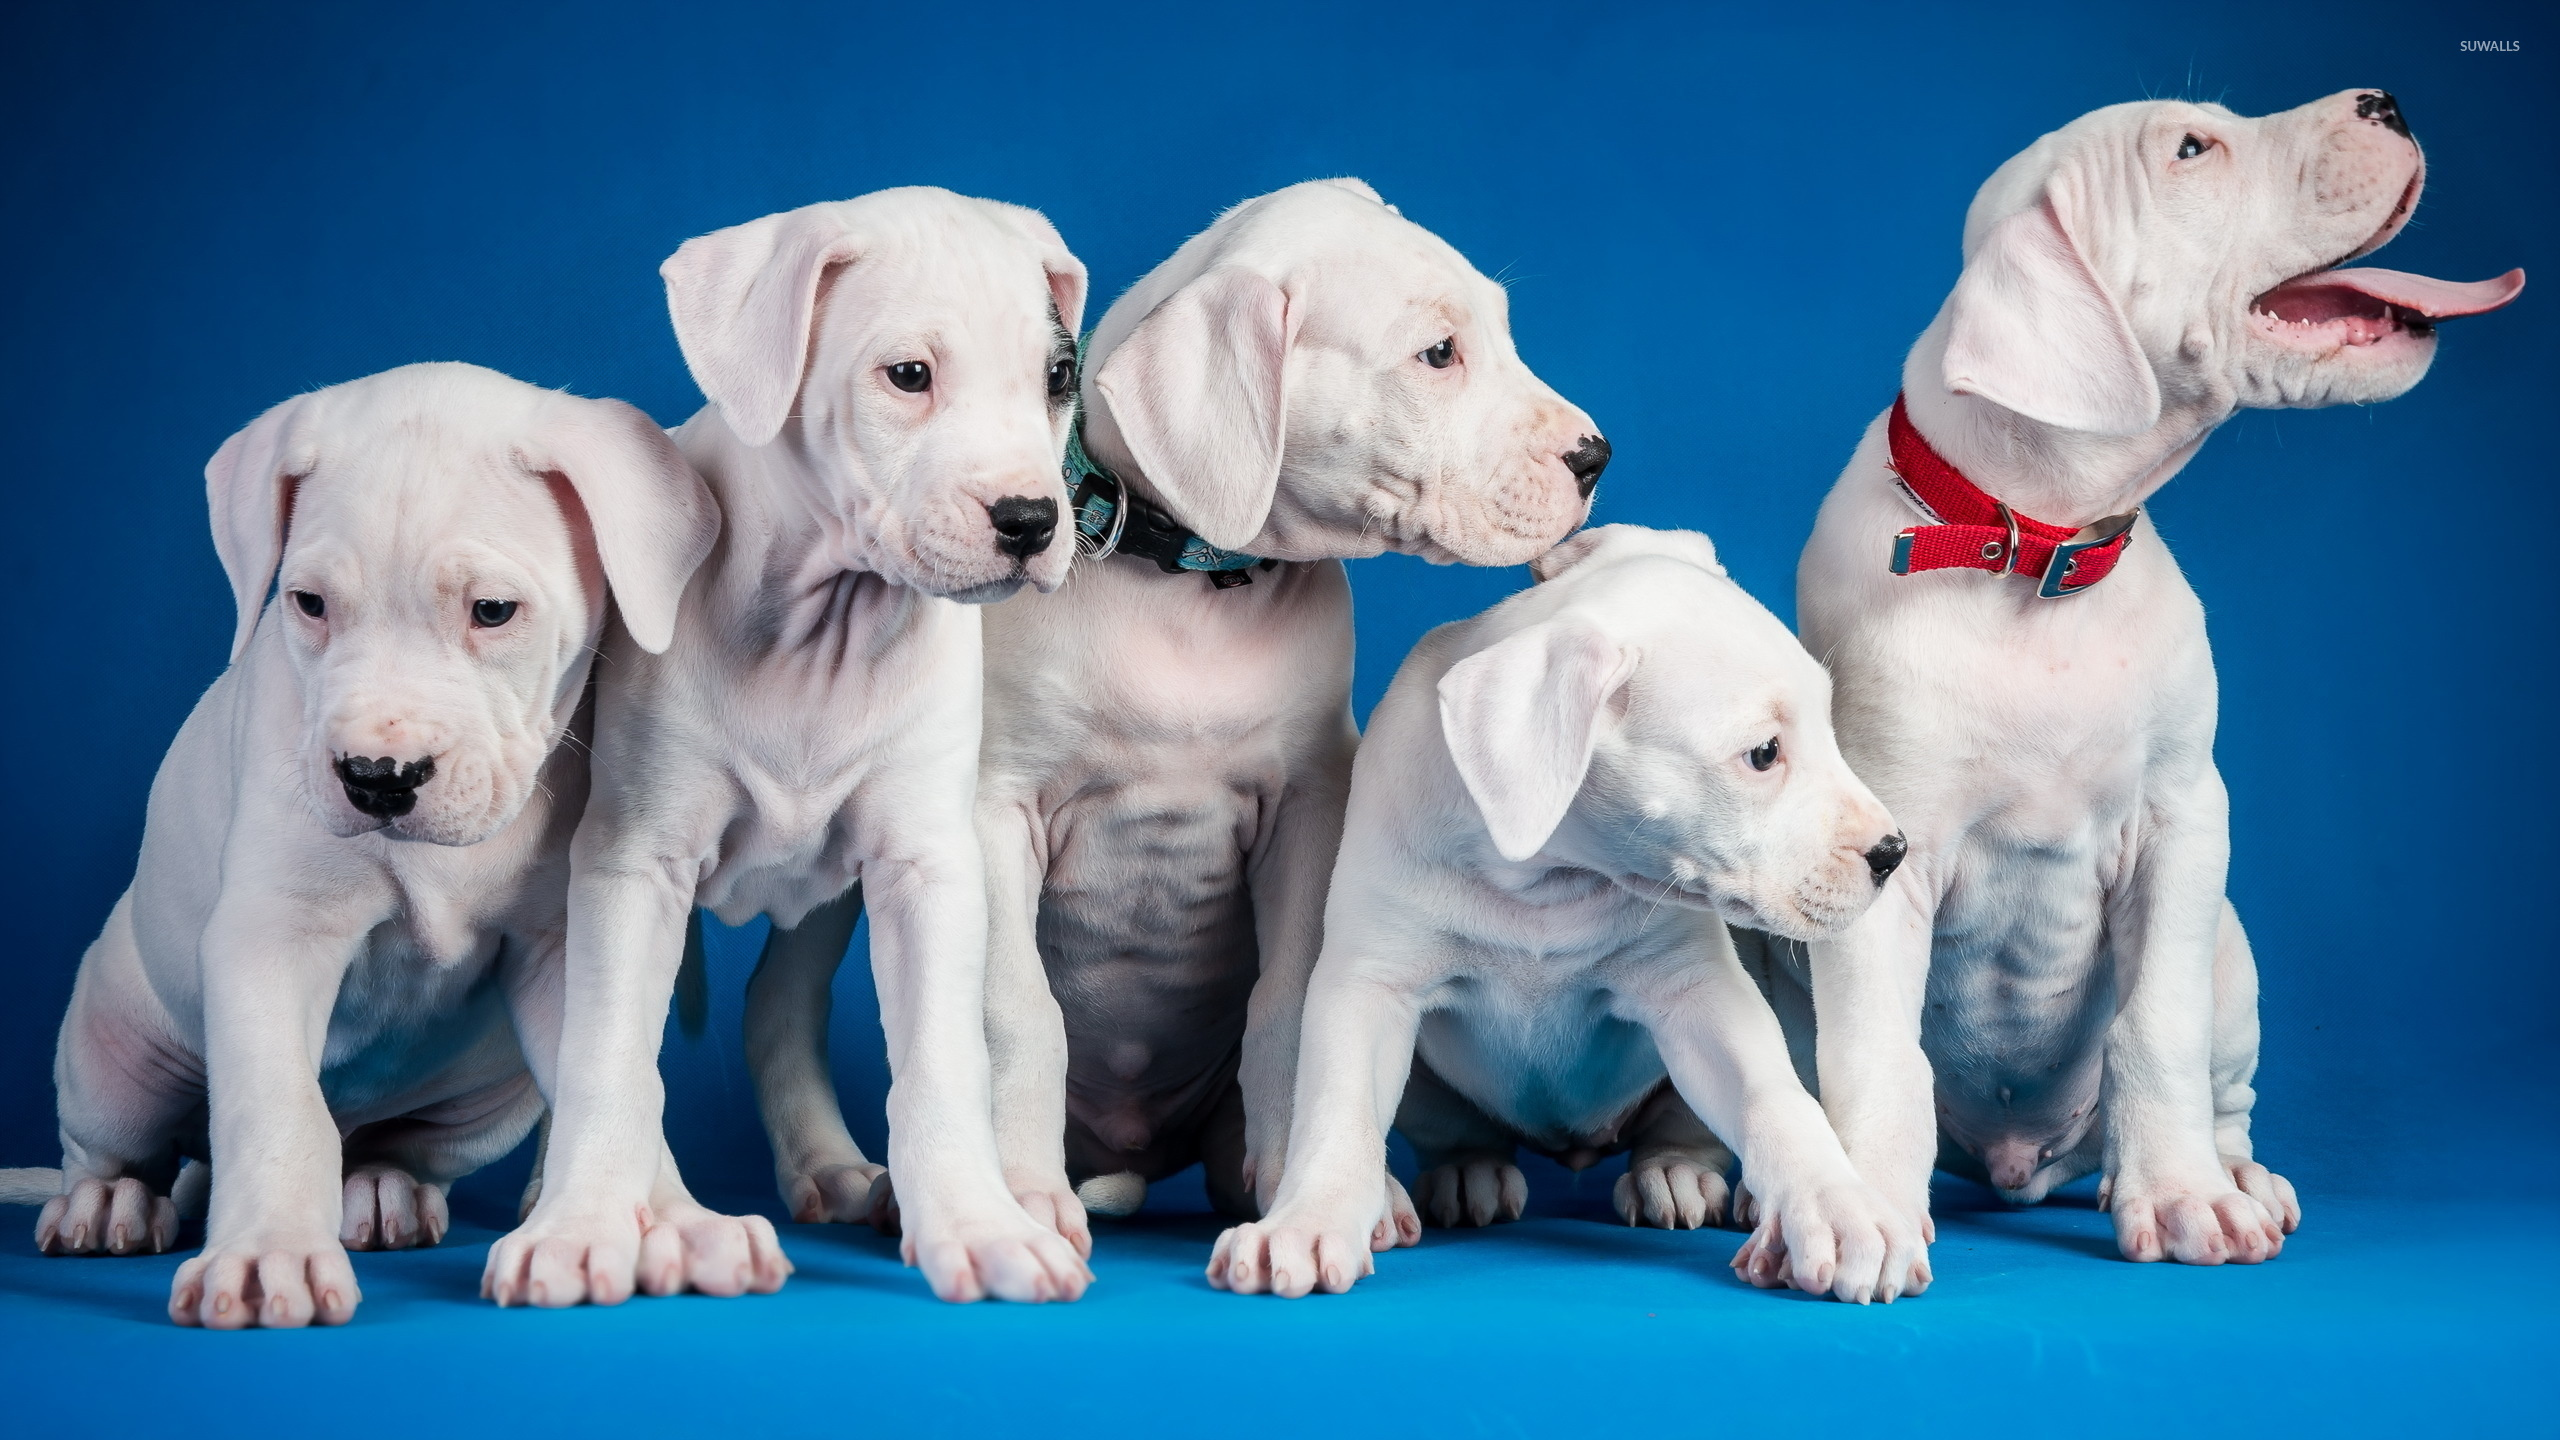 Cute White Puppies Wallpaper Animal Wallpapers 42327